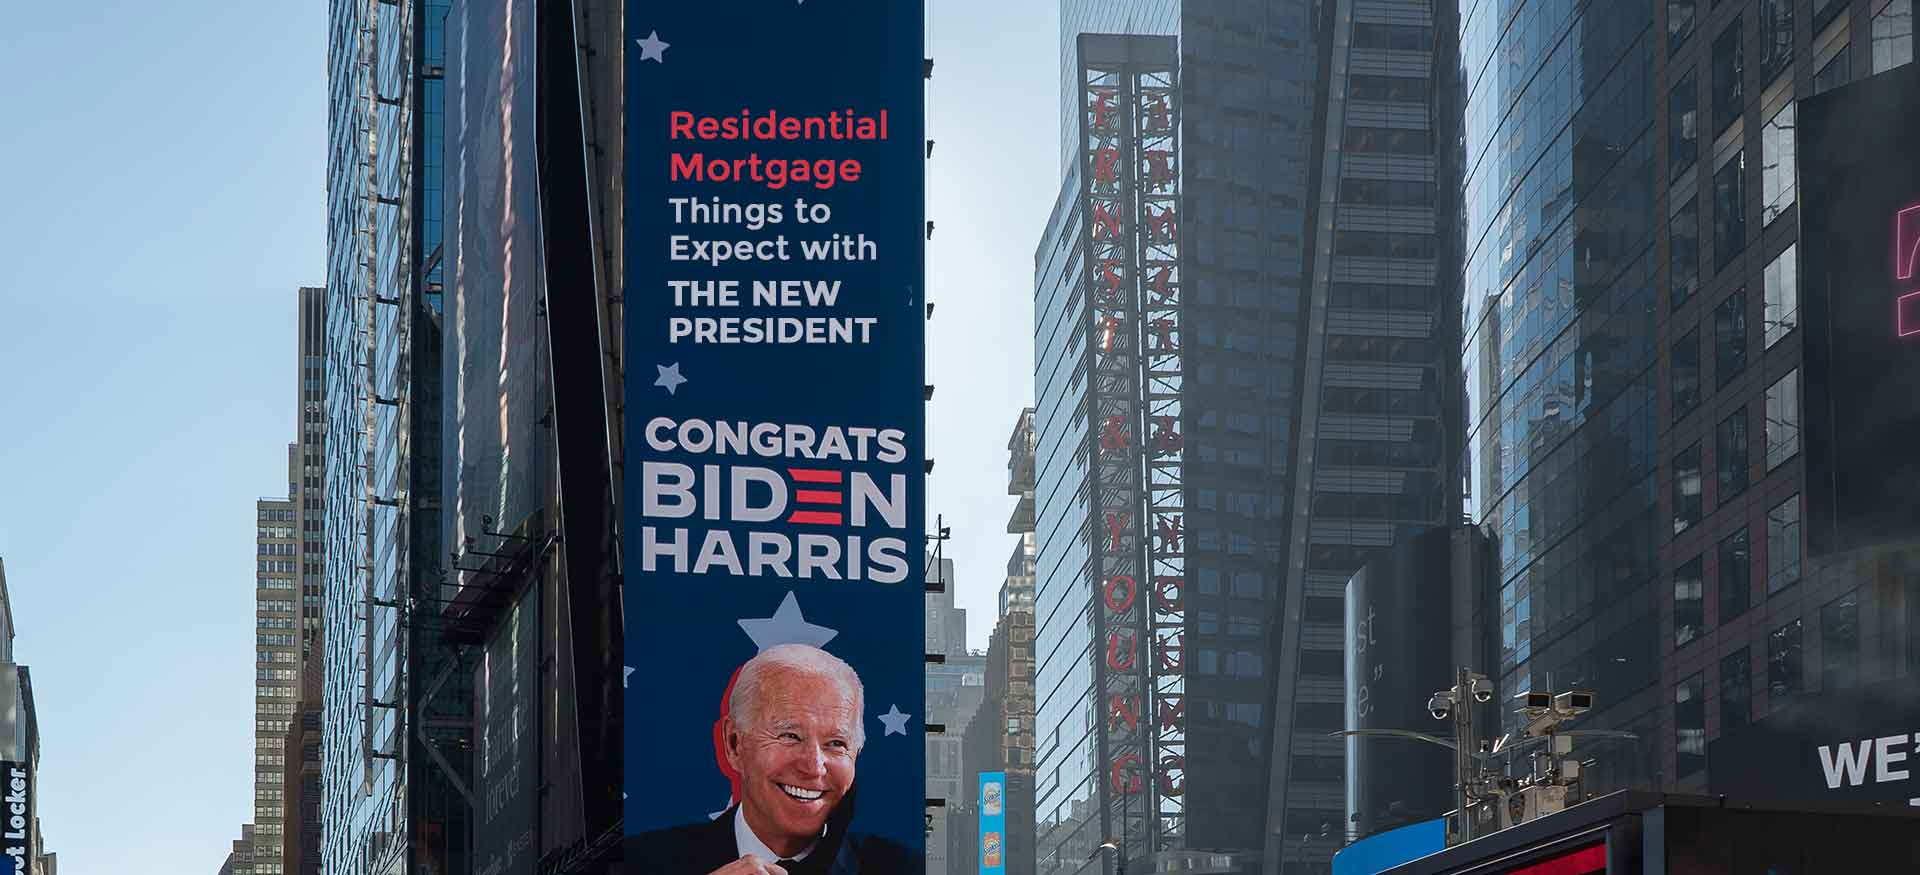 Residential-Mortgage-Things-to-expect-with-the-new-president